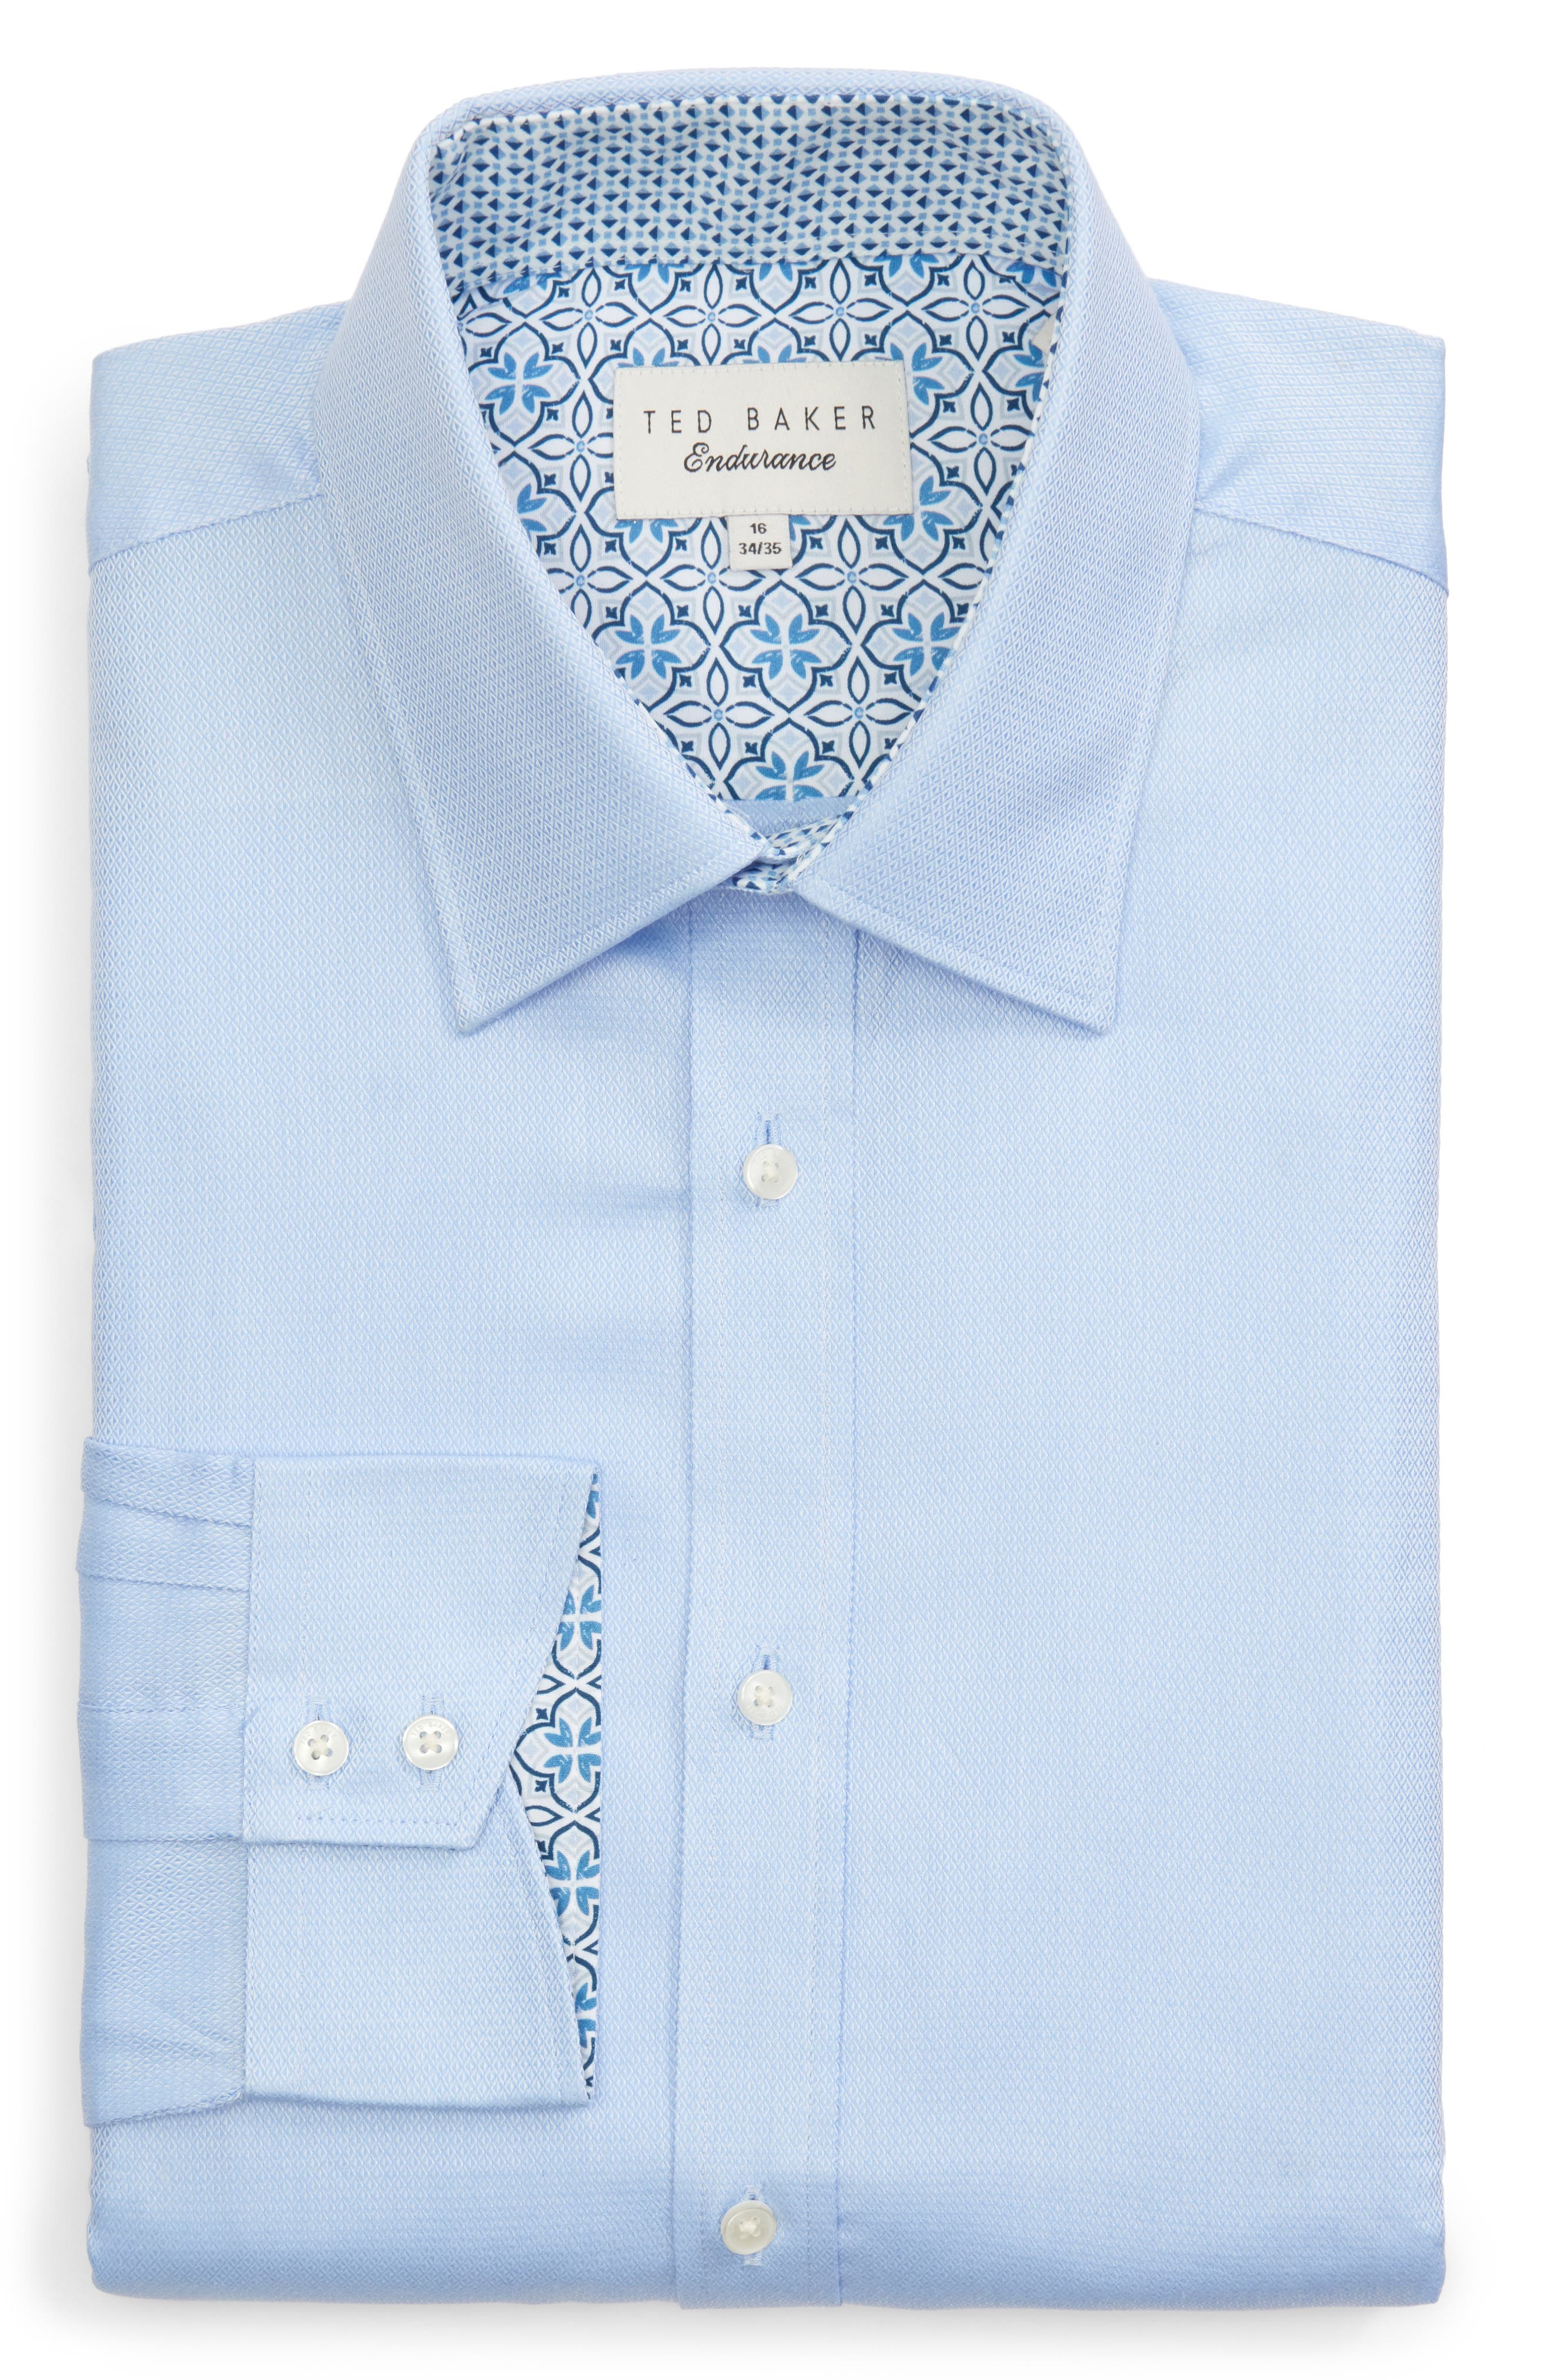 Chardo Trim Fit Floral Dress Shirt,                             Alternate thumbnail 5, color,                             030